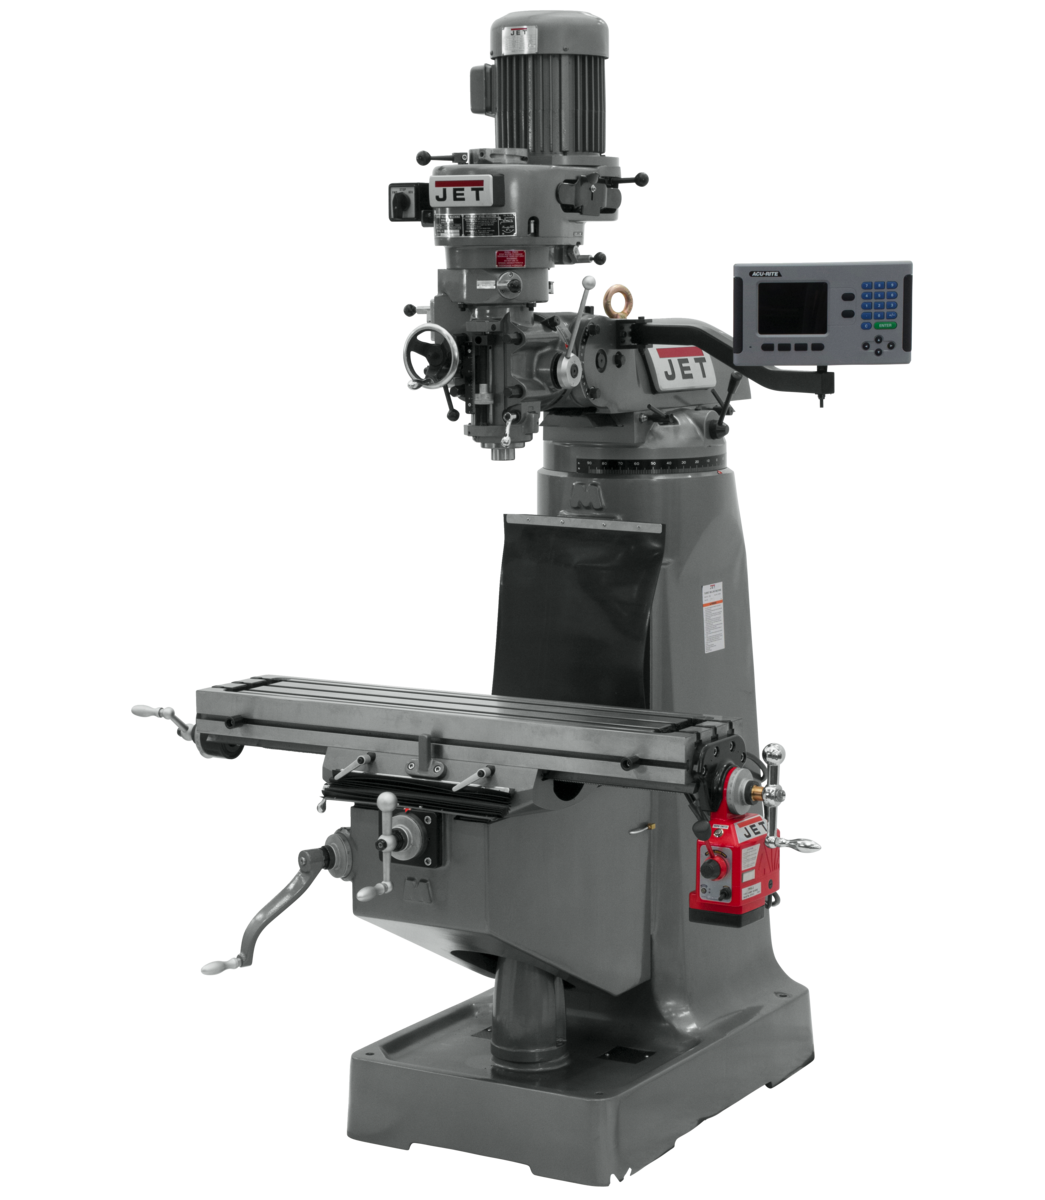 JTM-1 Mill With ACU-RITE 203 DRO and X-Axis Powerfeed